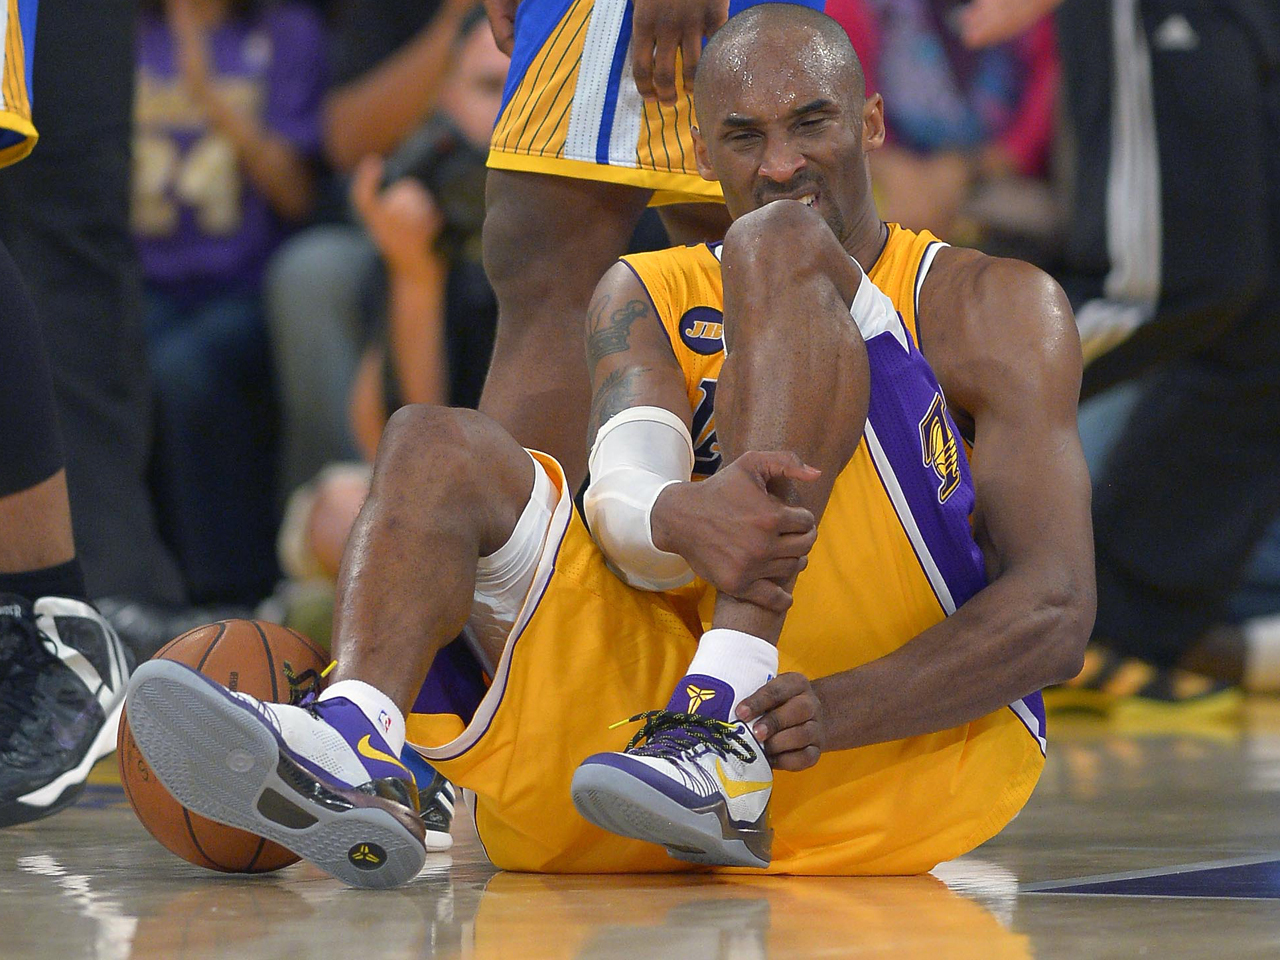 43c63b9b652 Kobe Bryant's season over after tearing Achilles - CBS News